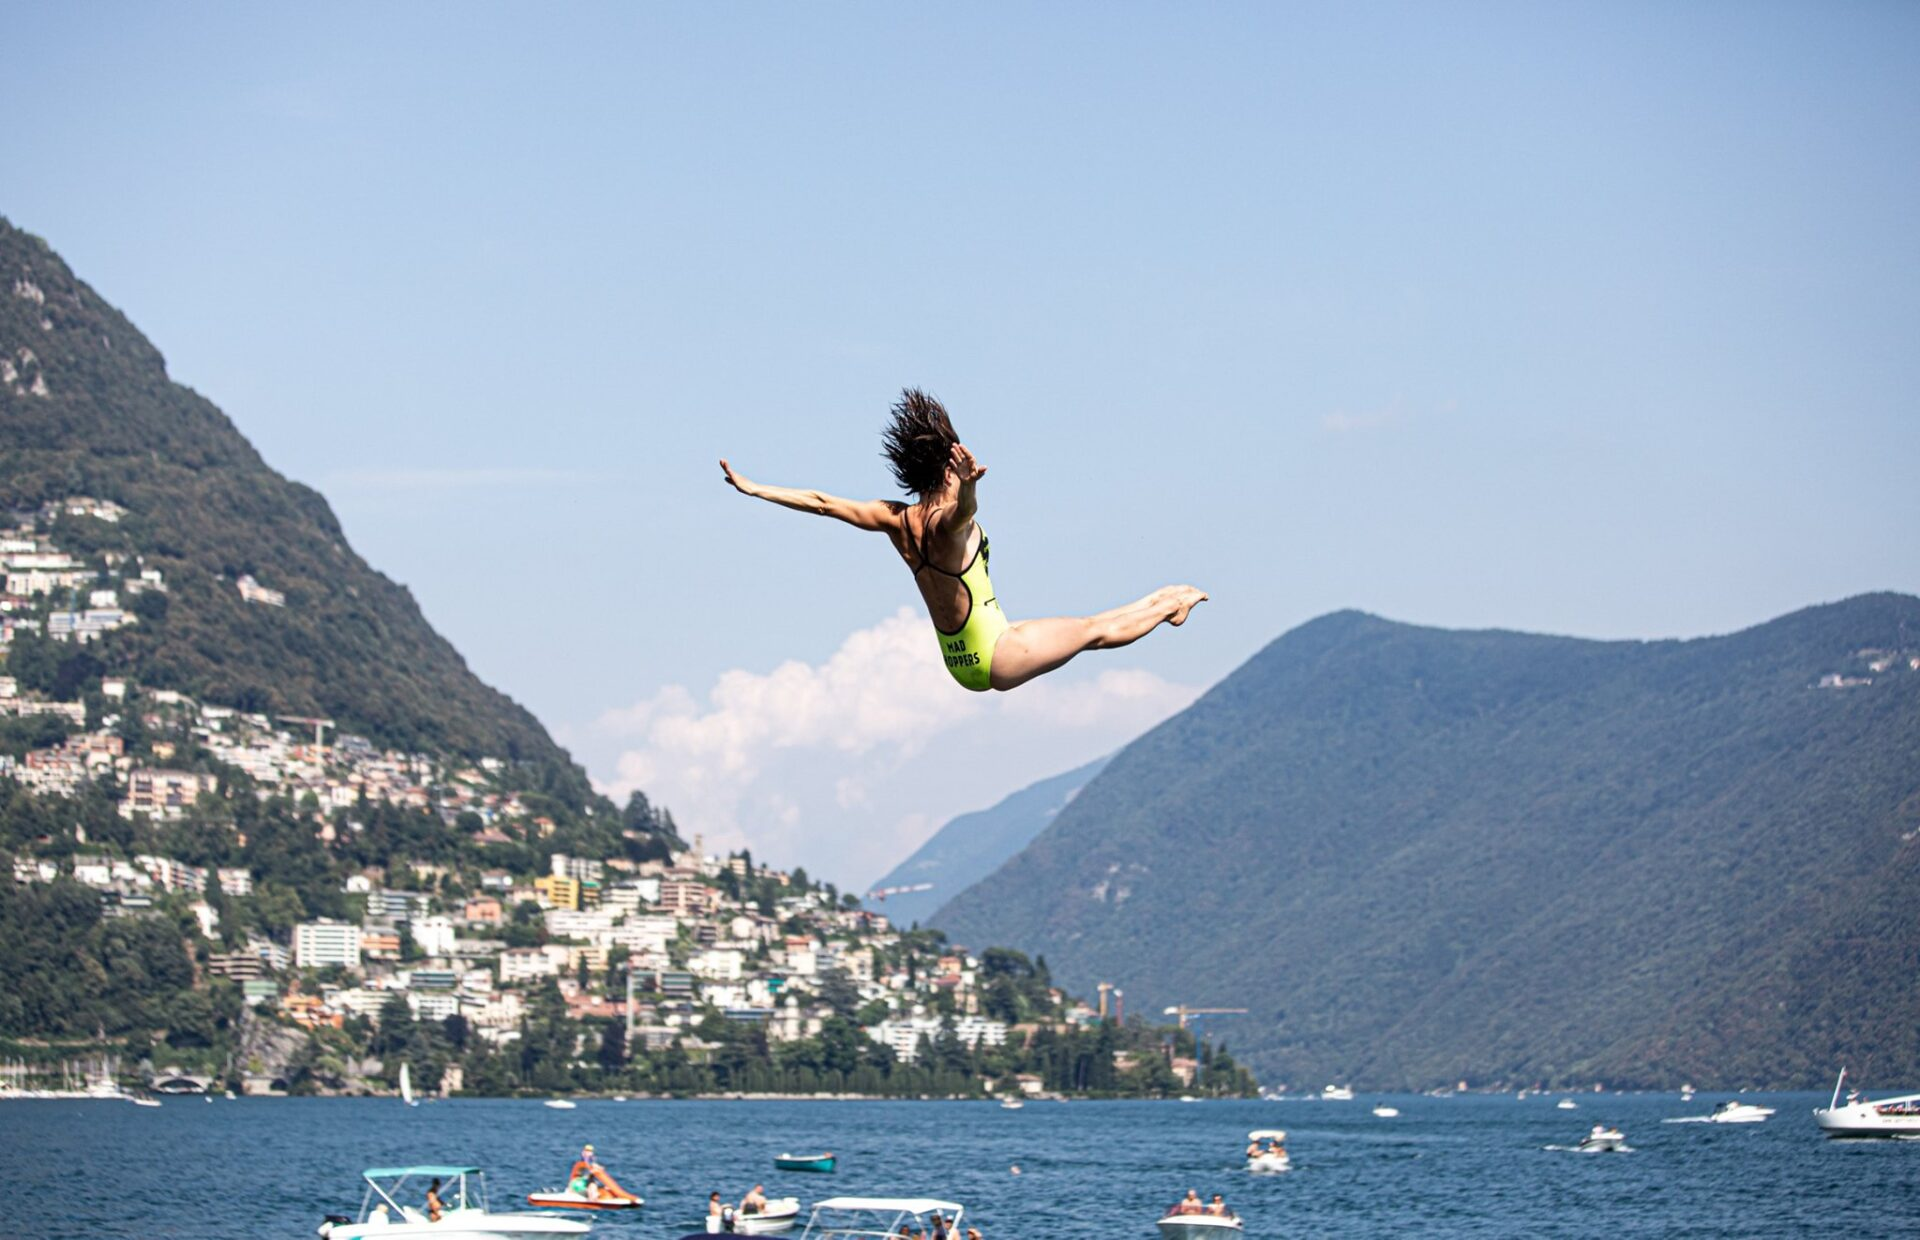 Lugano Cliff Diving 2020 – Cancelled!